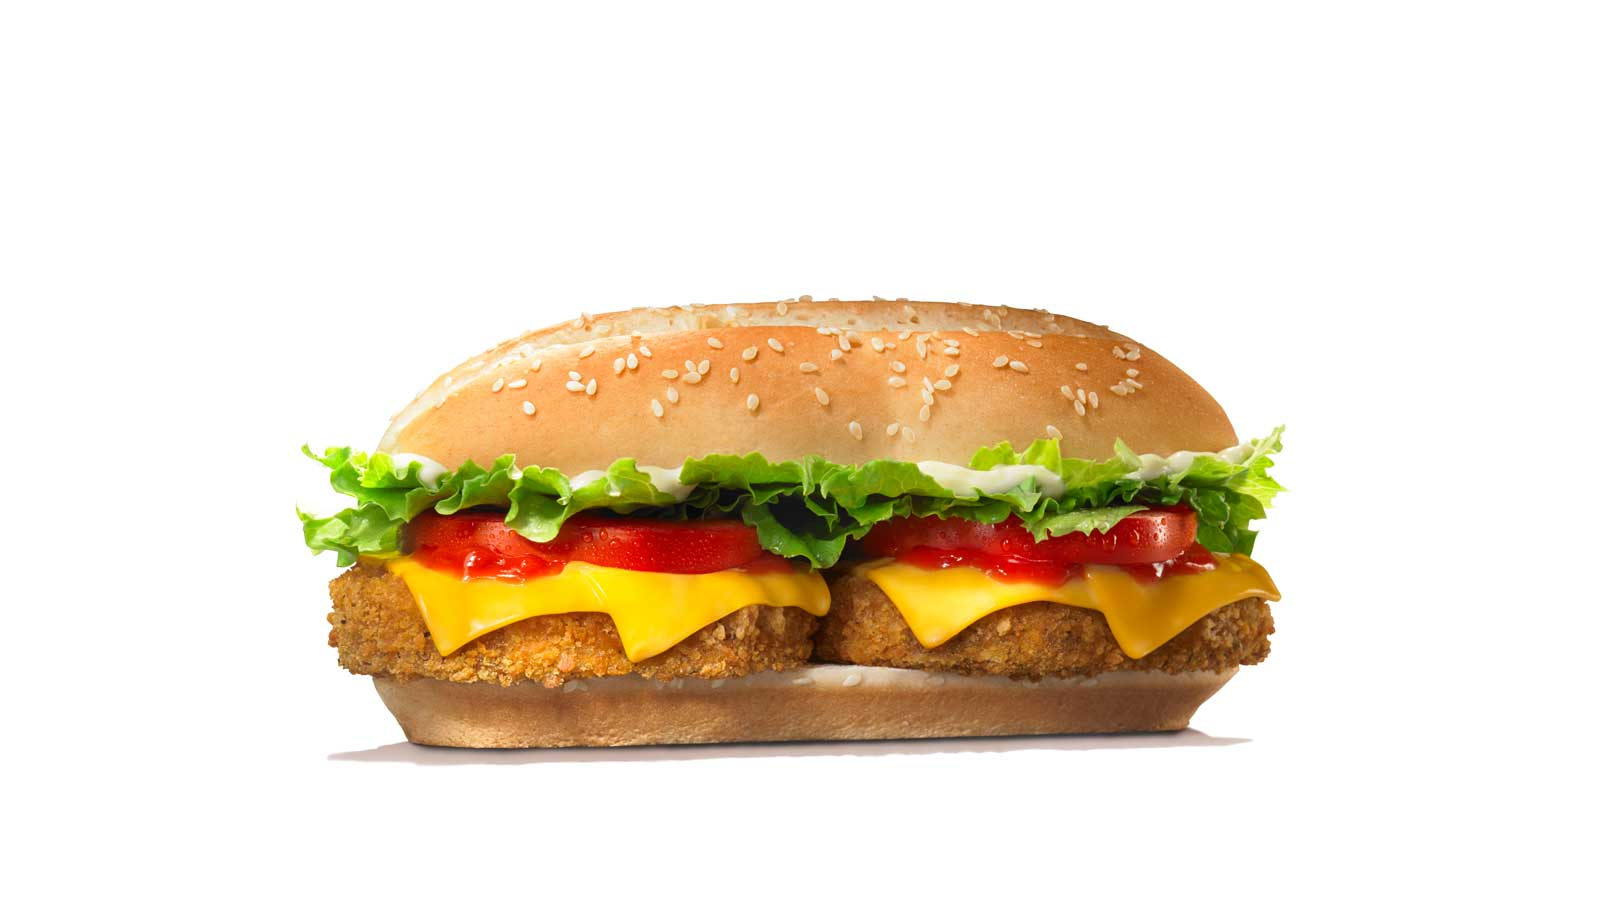 Burger King Malta launches Veggie Bean Burger